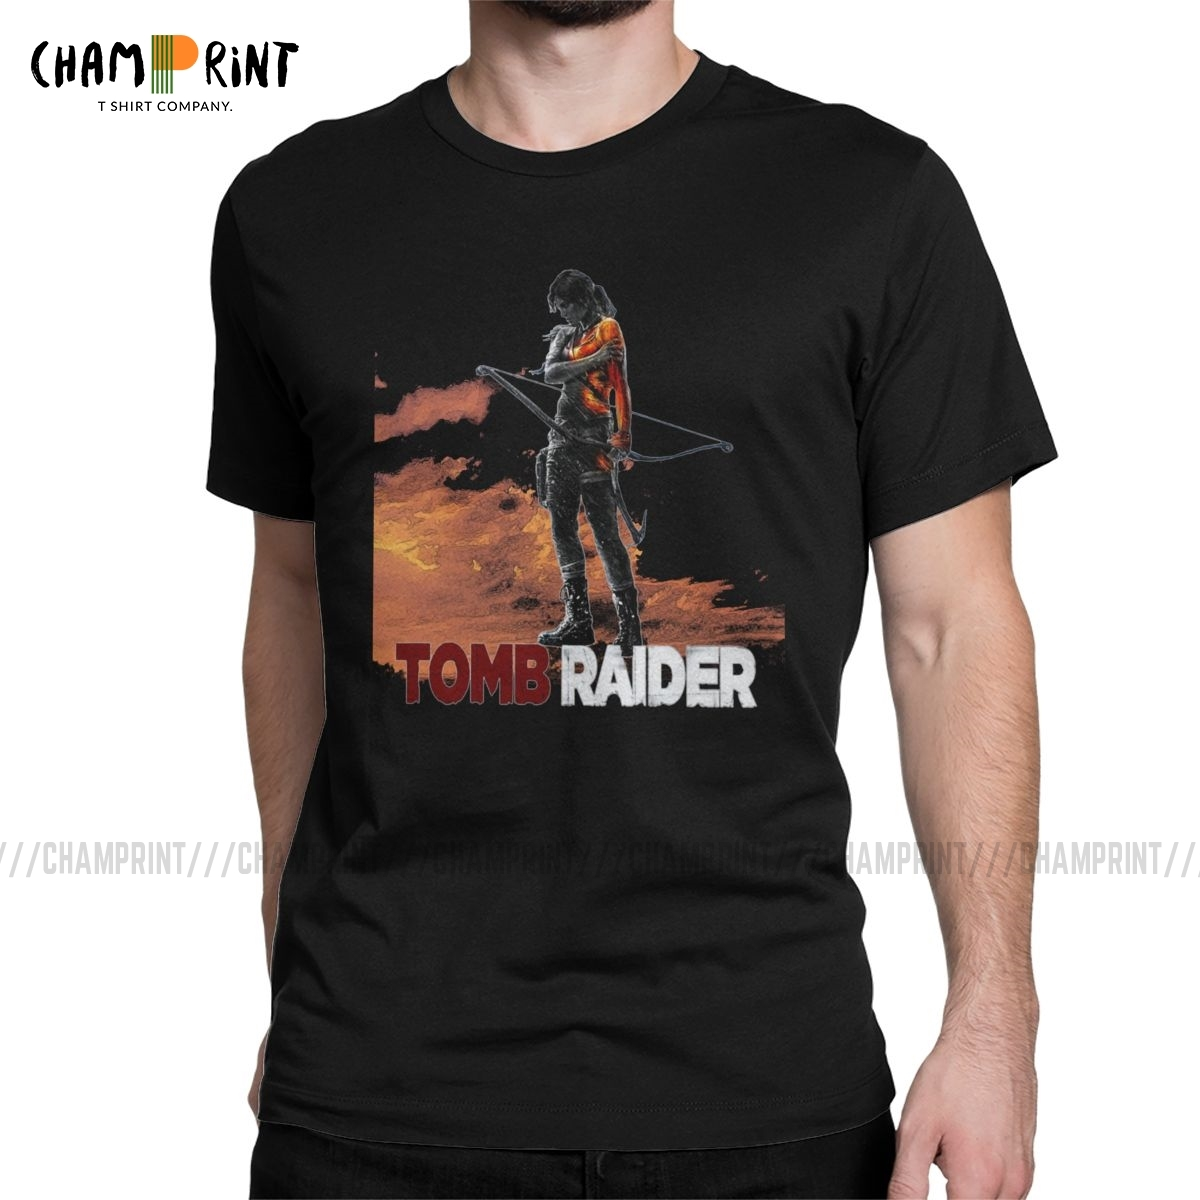 <font><b>Men</b></font> Tomb Raider Lara Croft Adventer Game <font><b>T</b></font> <font><b>Shirt</b></font> 100% Cotton Tops Funny Short Sleeve O Neck Tees <font><b>6XL</b></font> <font><b>T</b></font>-<font><b>Shirt</b></font> image